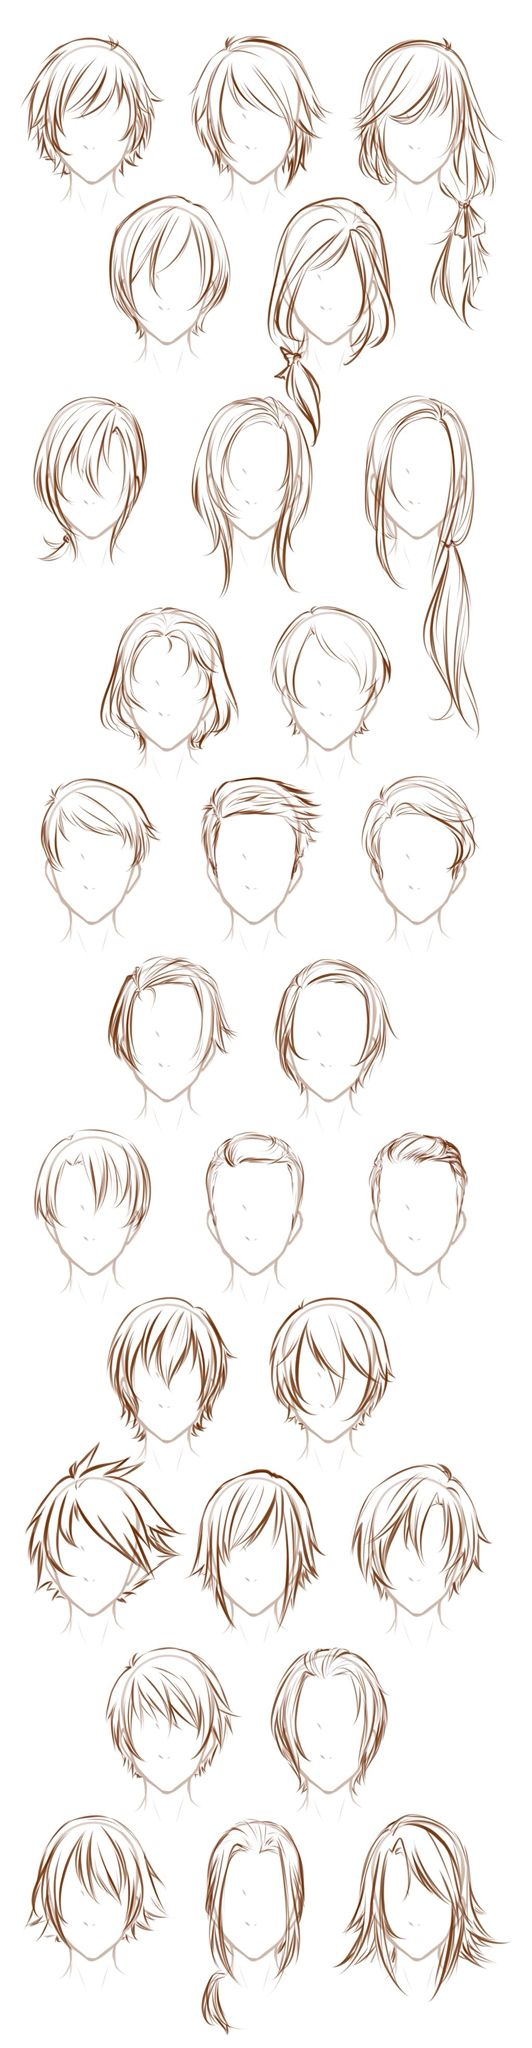 14 best drawing people images on pinterest drawings draw and anime hair styles for anime drawing ccuart Images